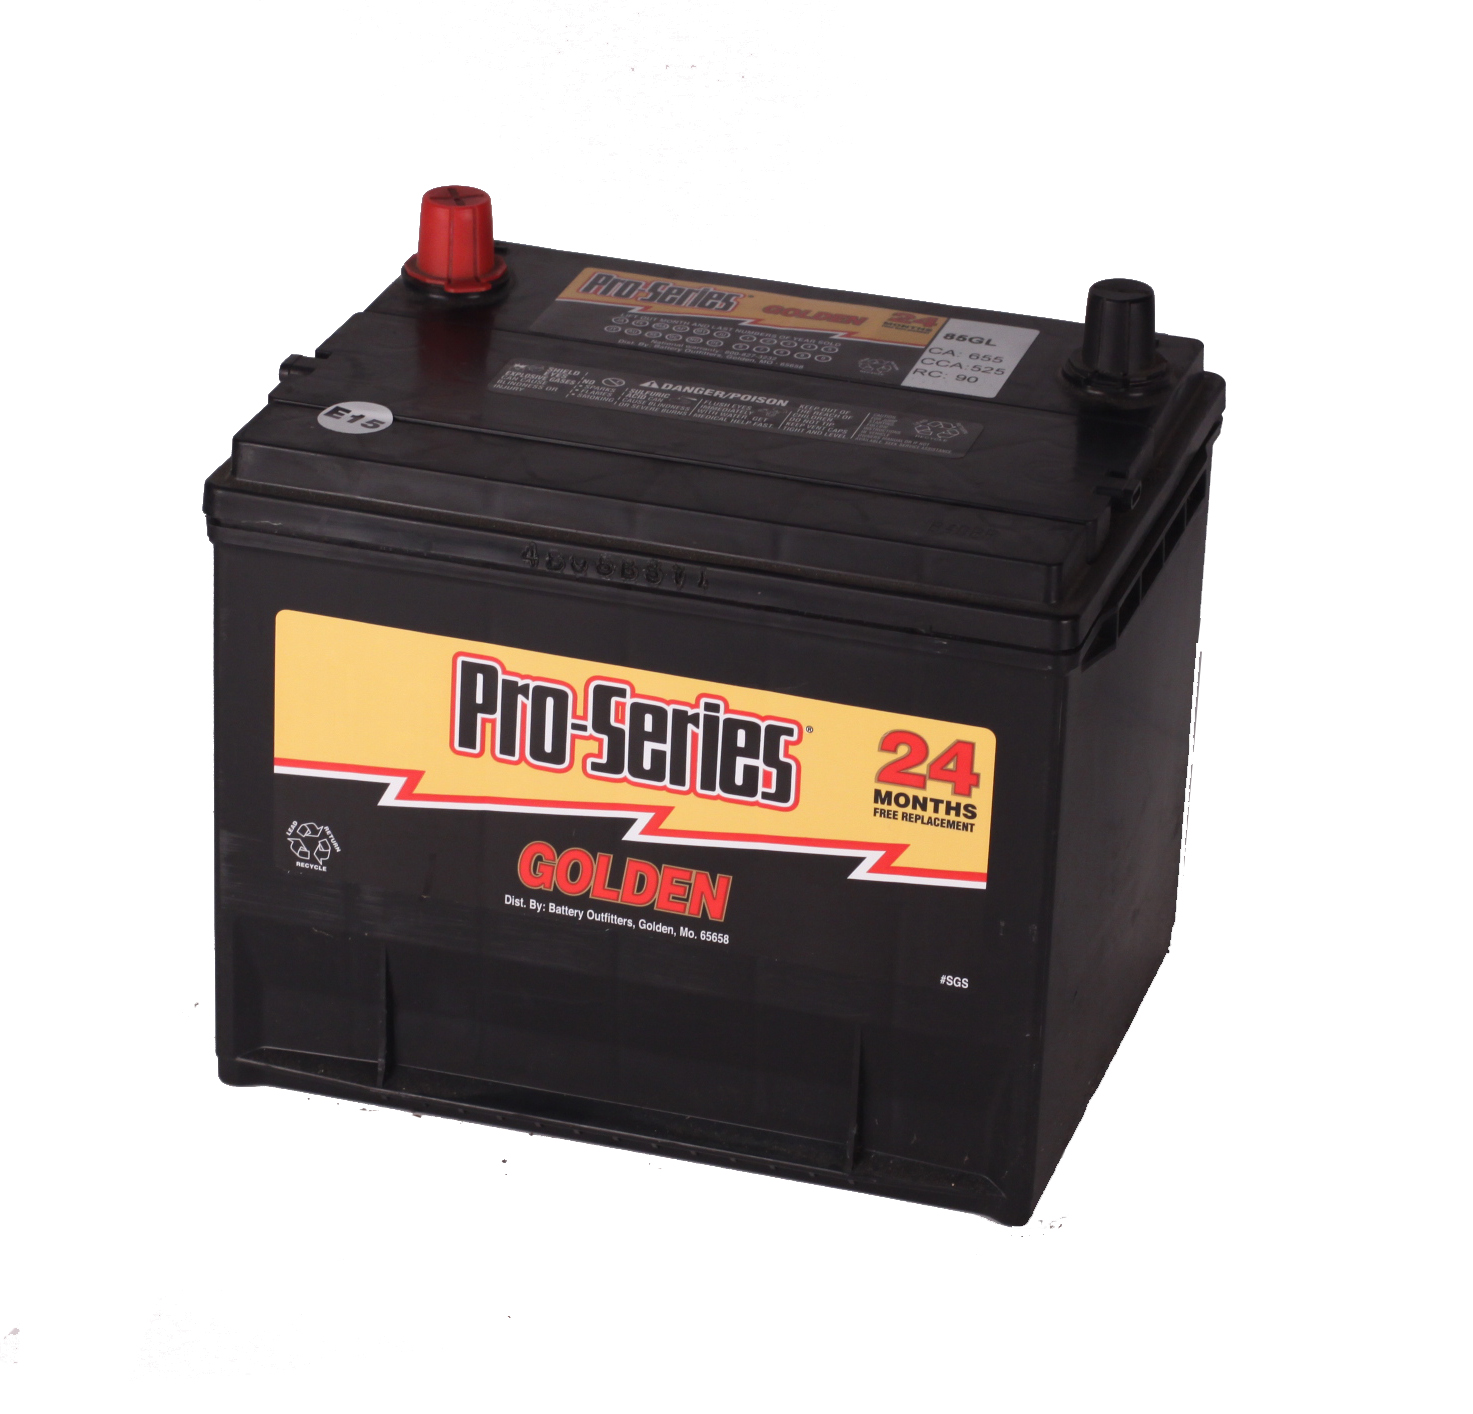 GRP 85 PRO-SERIES BATTERY